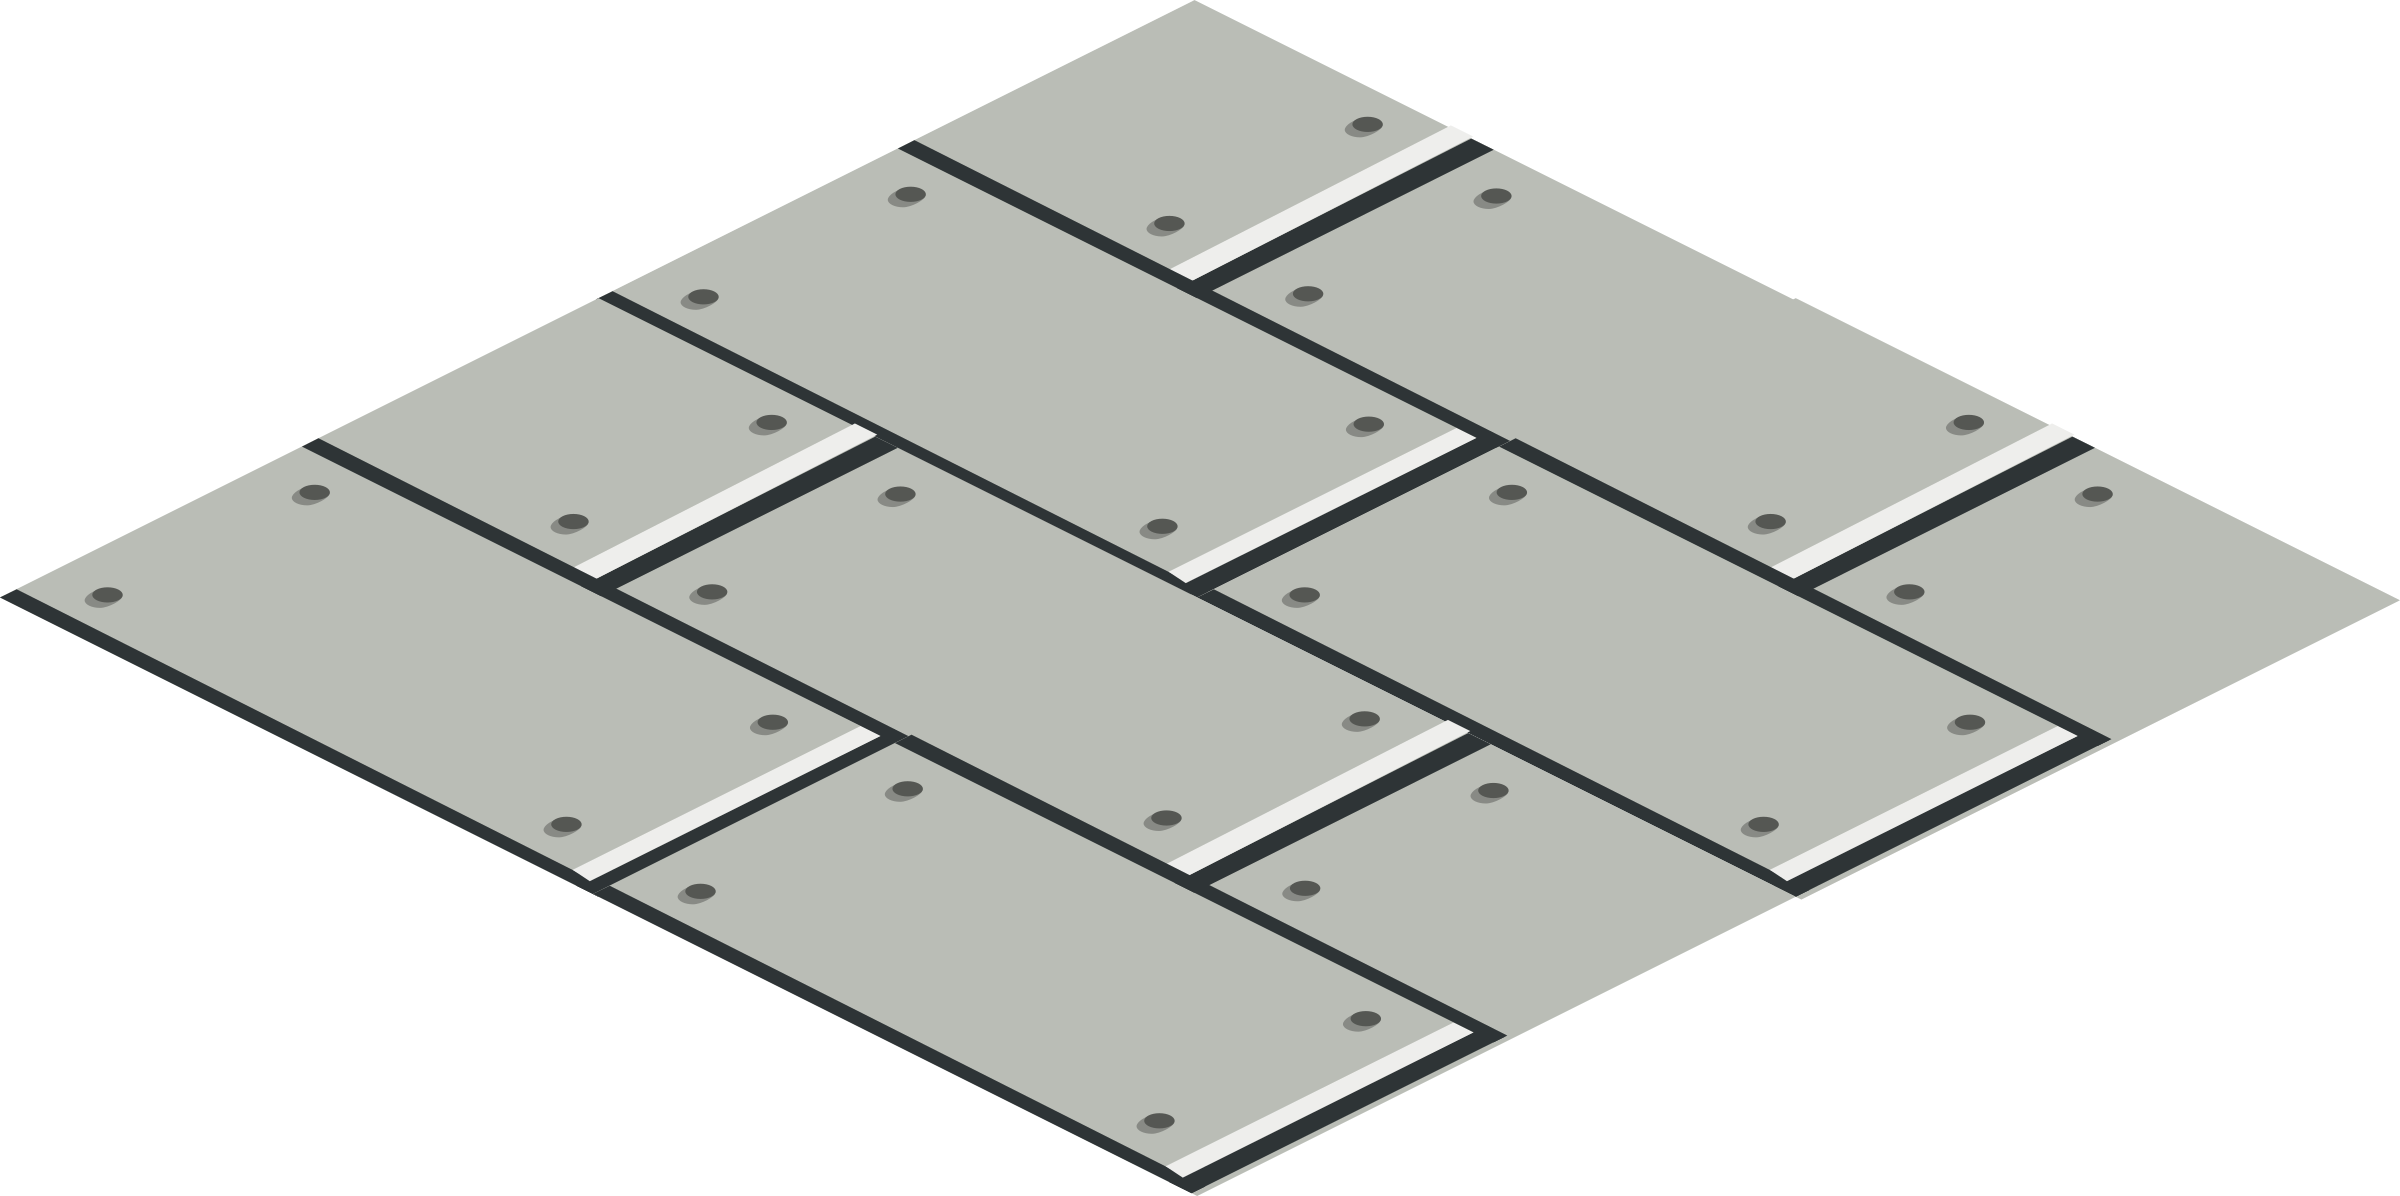 isometric floor tile 4 by rg1024